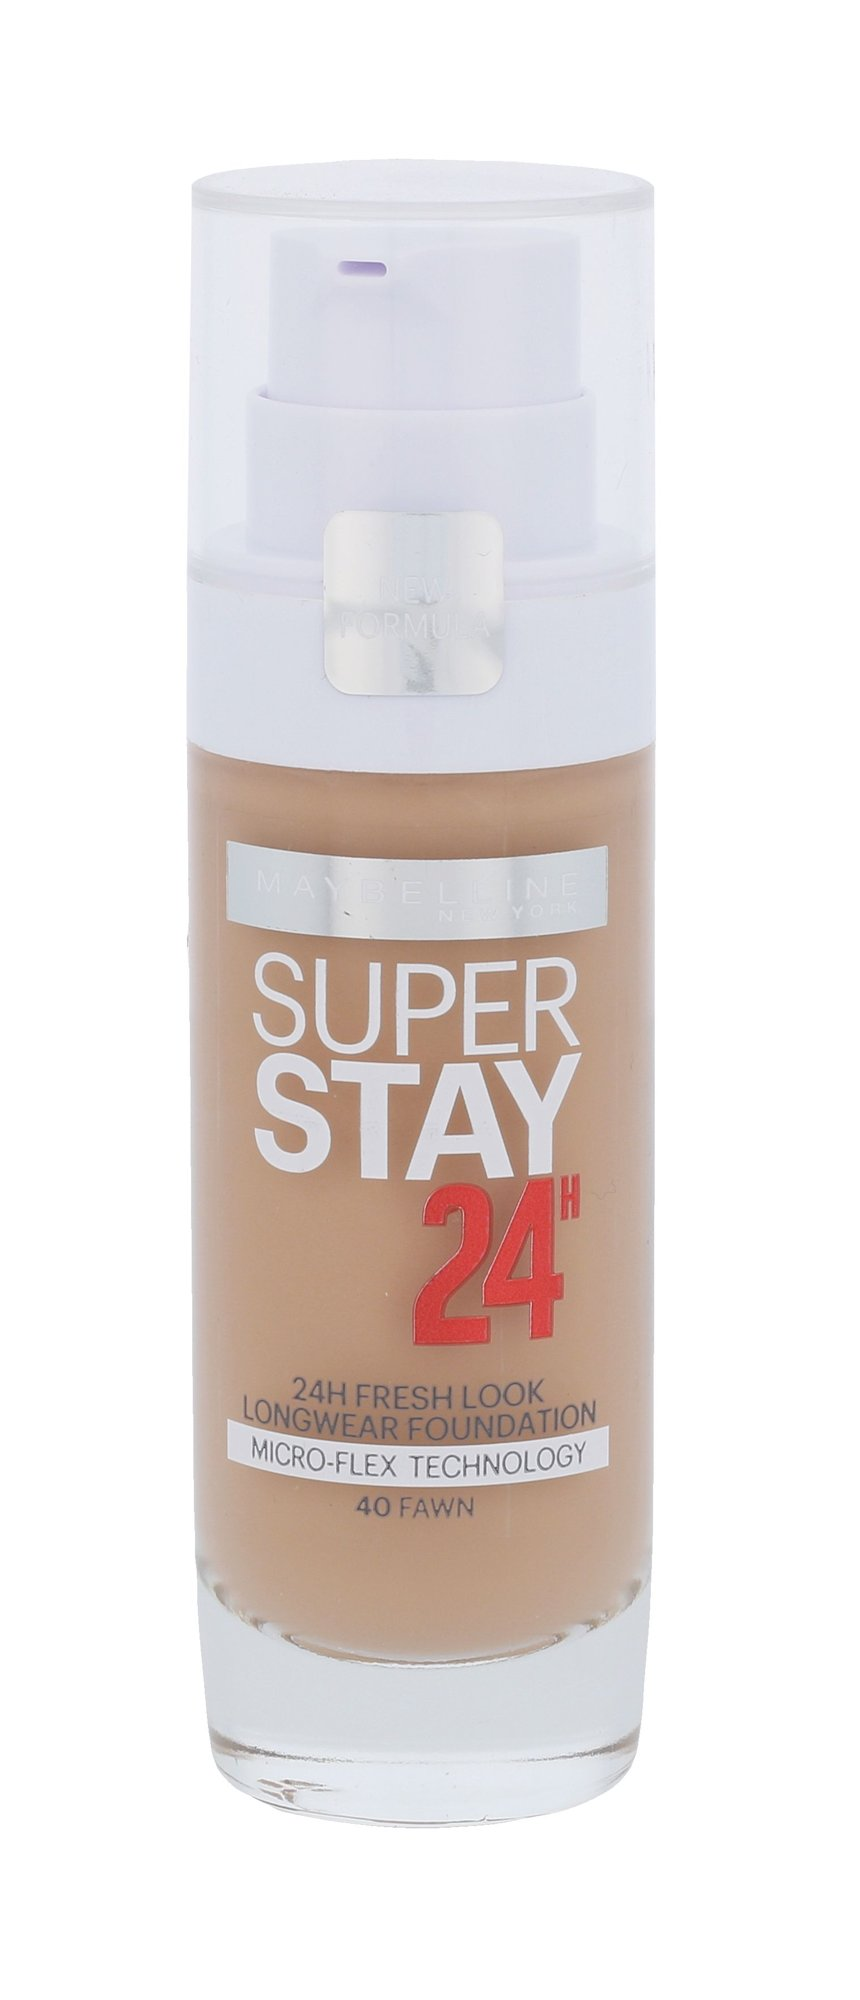 Maybelline Superstay Cosmetic 30ml 40 Fawn